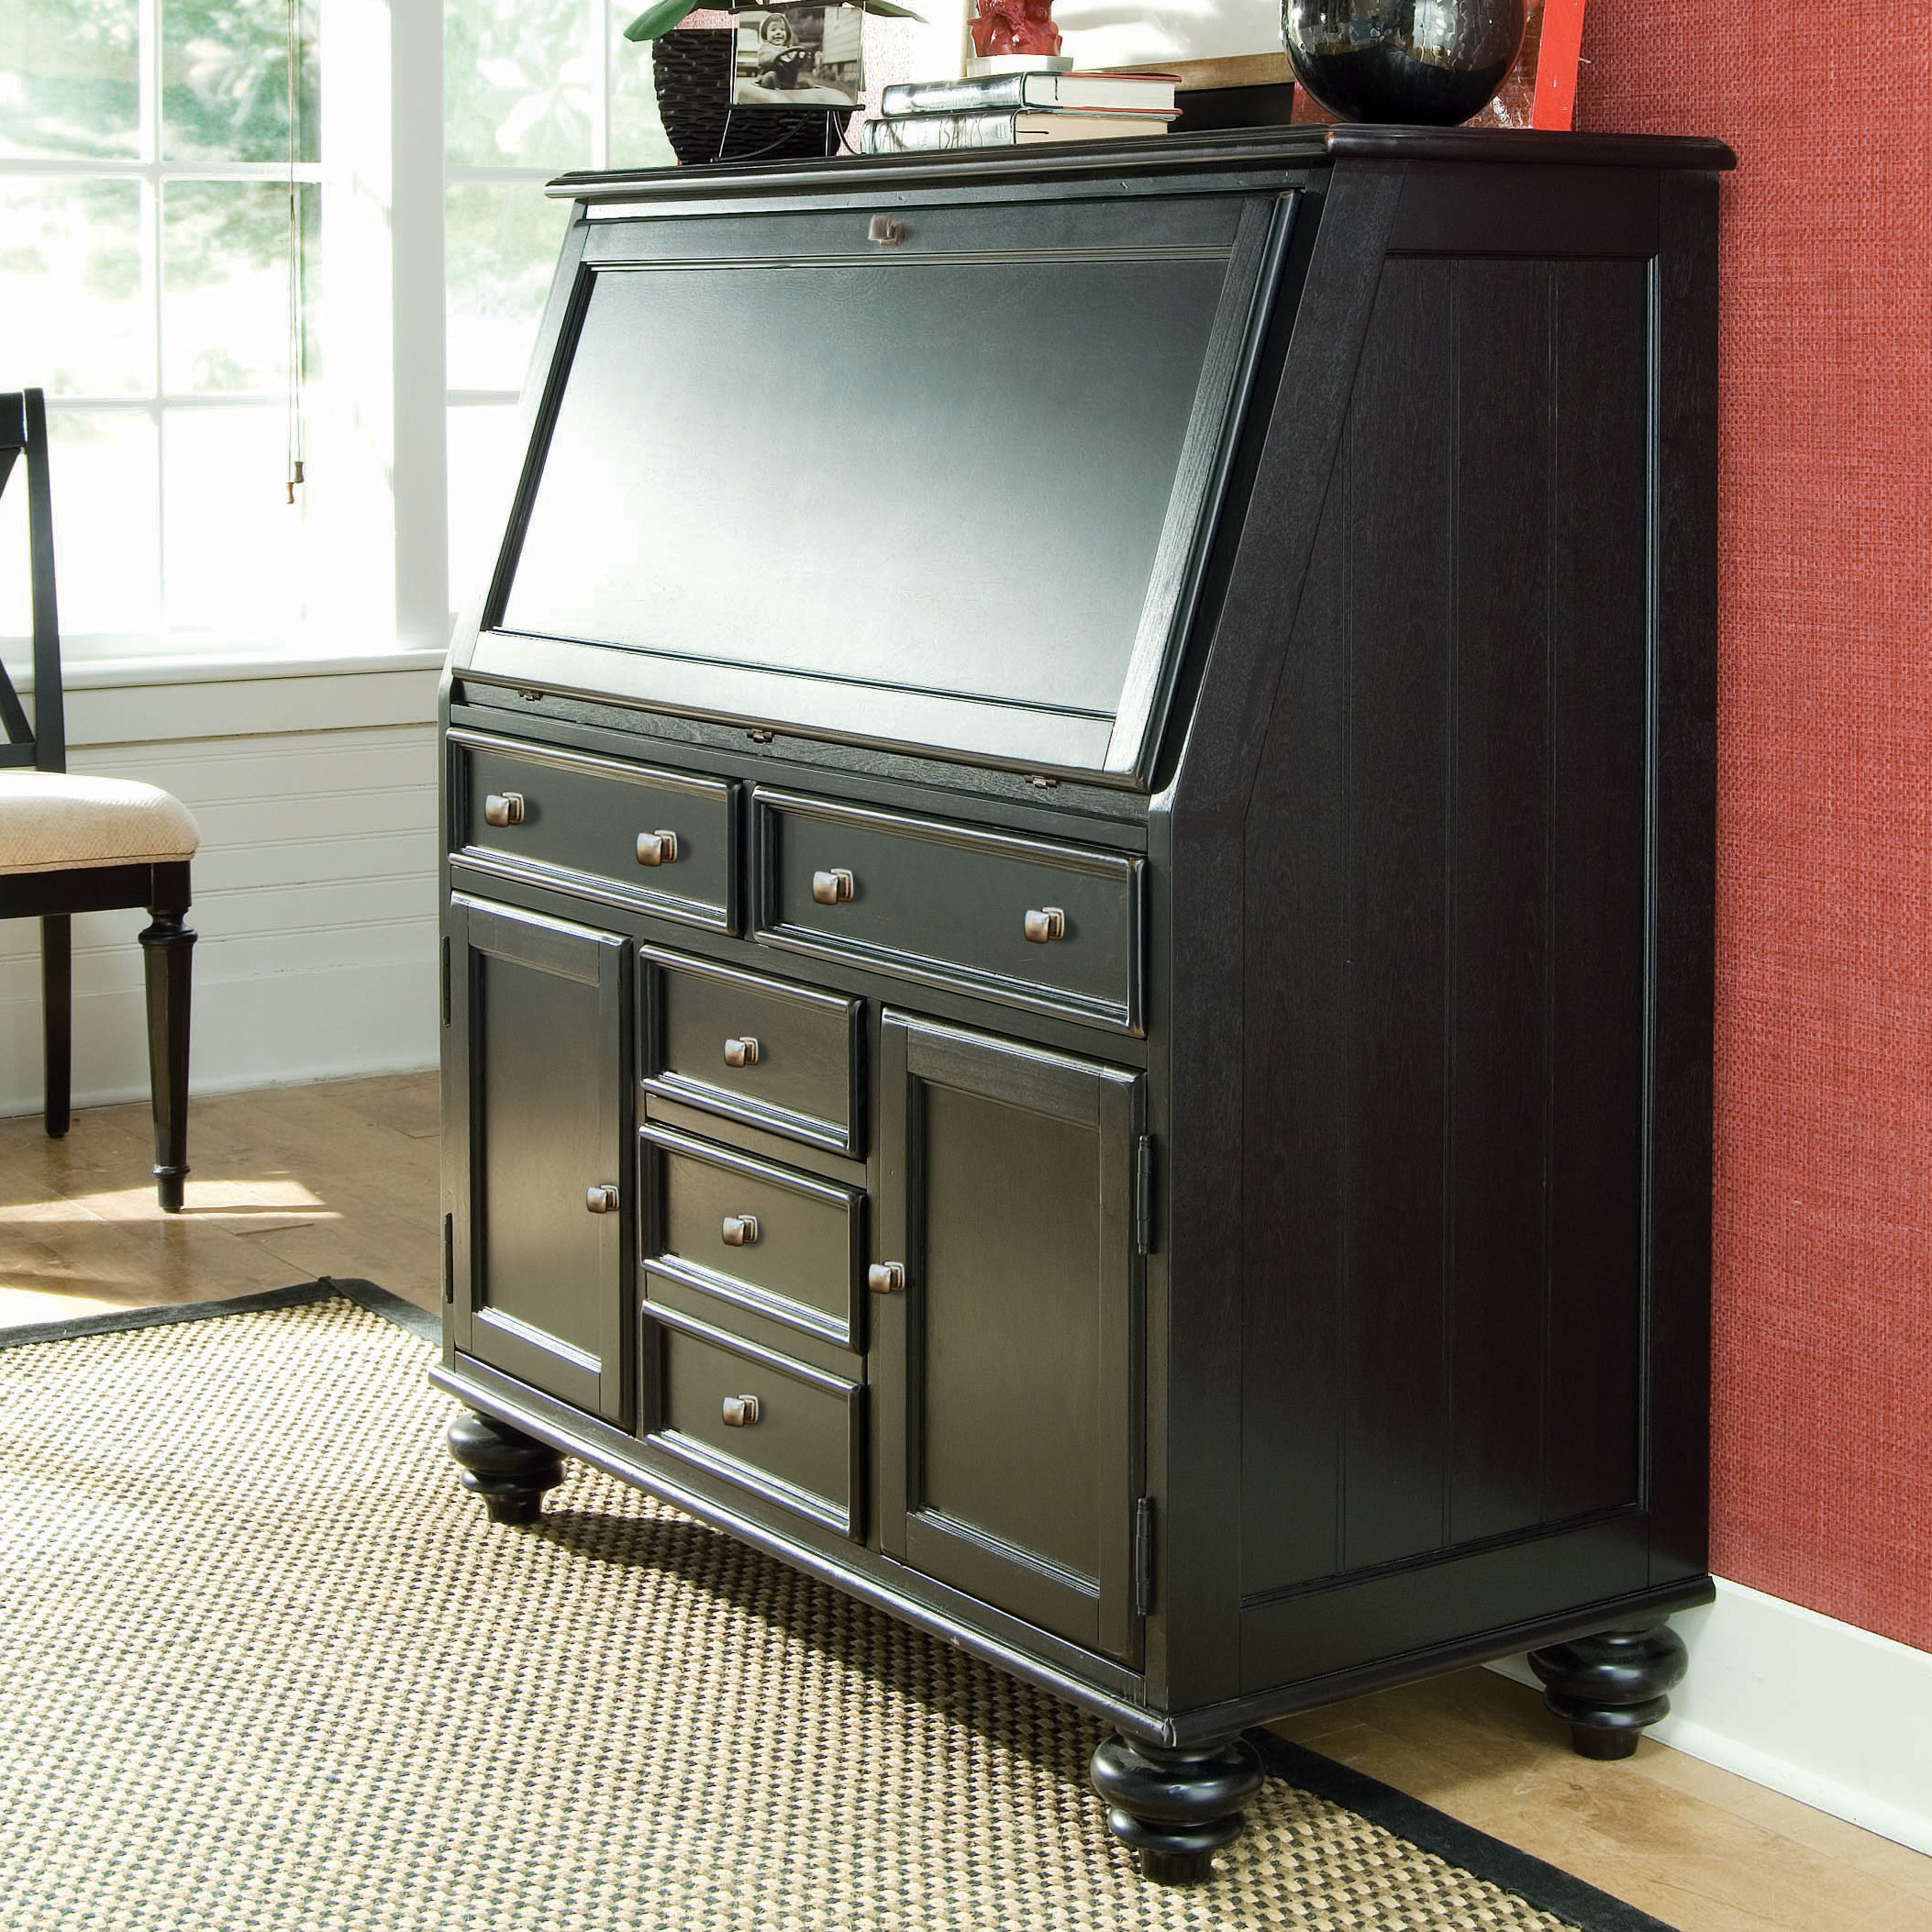 Delicieux Secretary Style Computer Desk 19